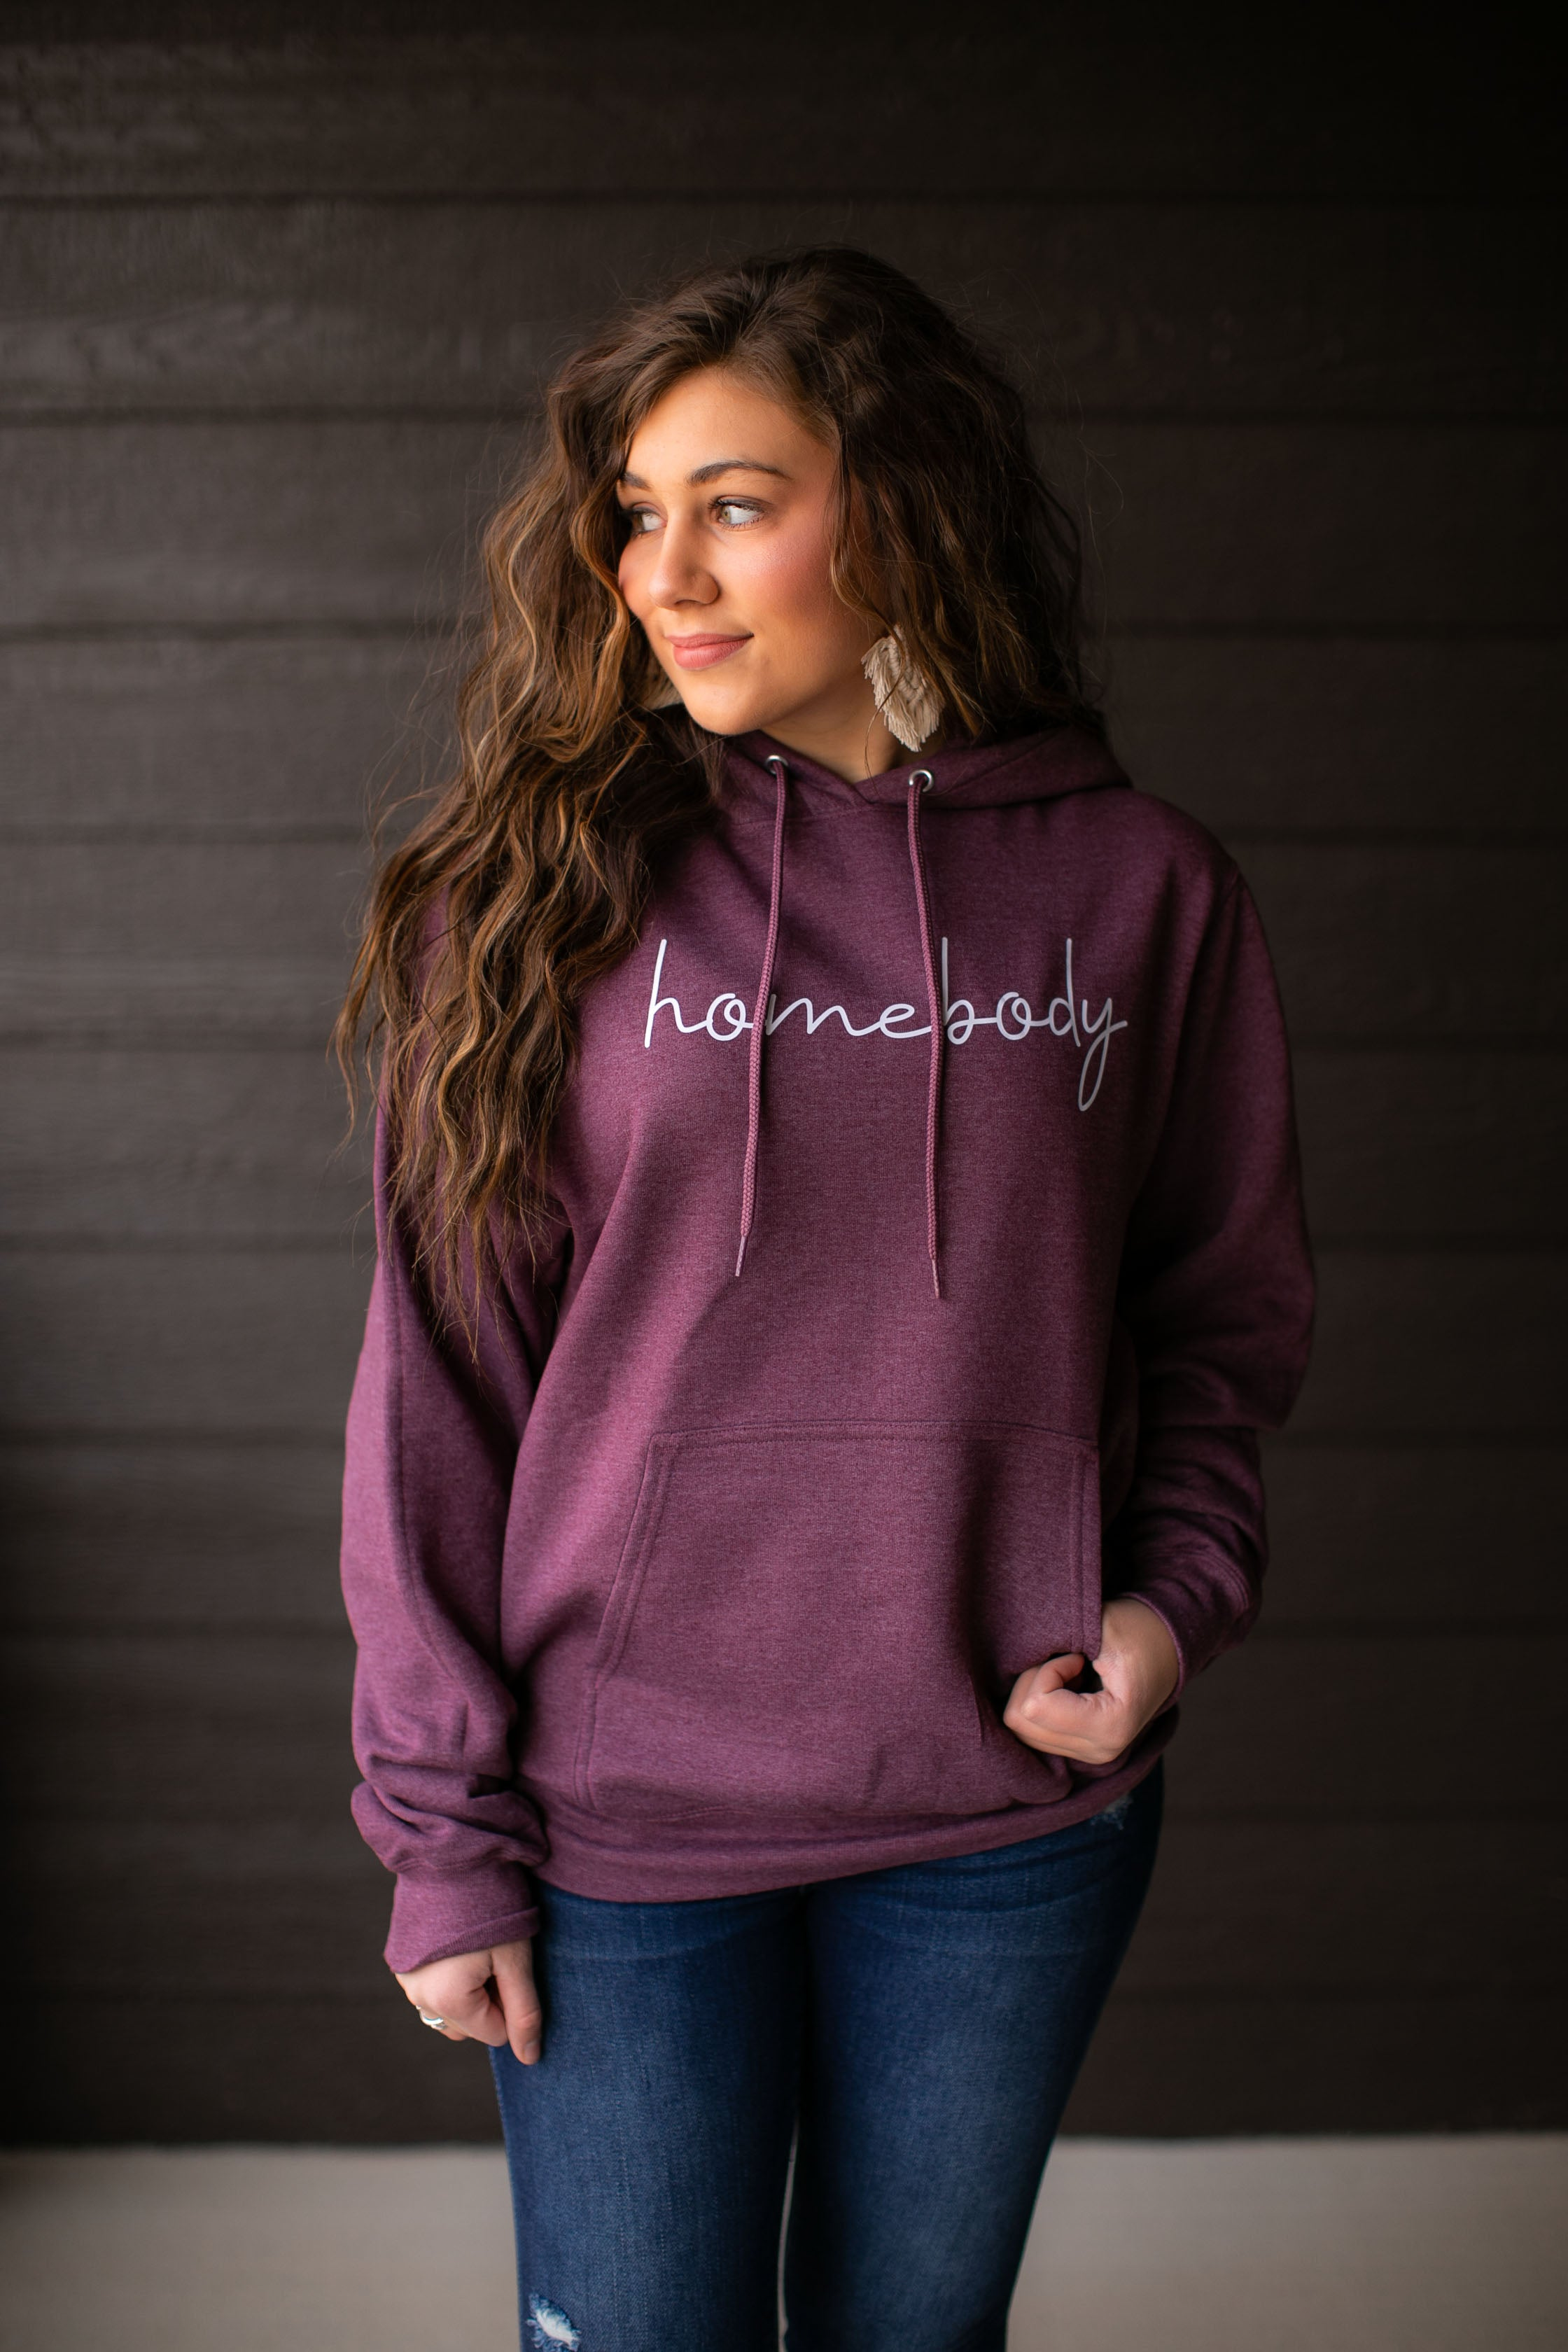 Homebody Graphic Hoodie